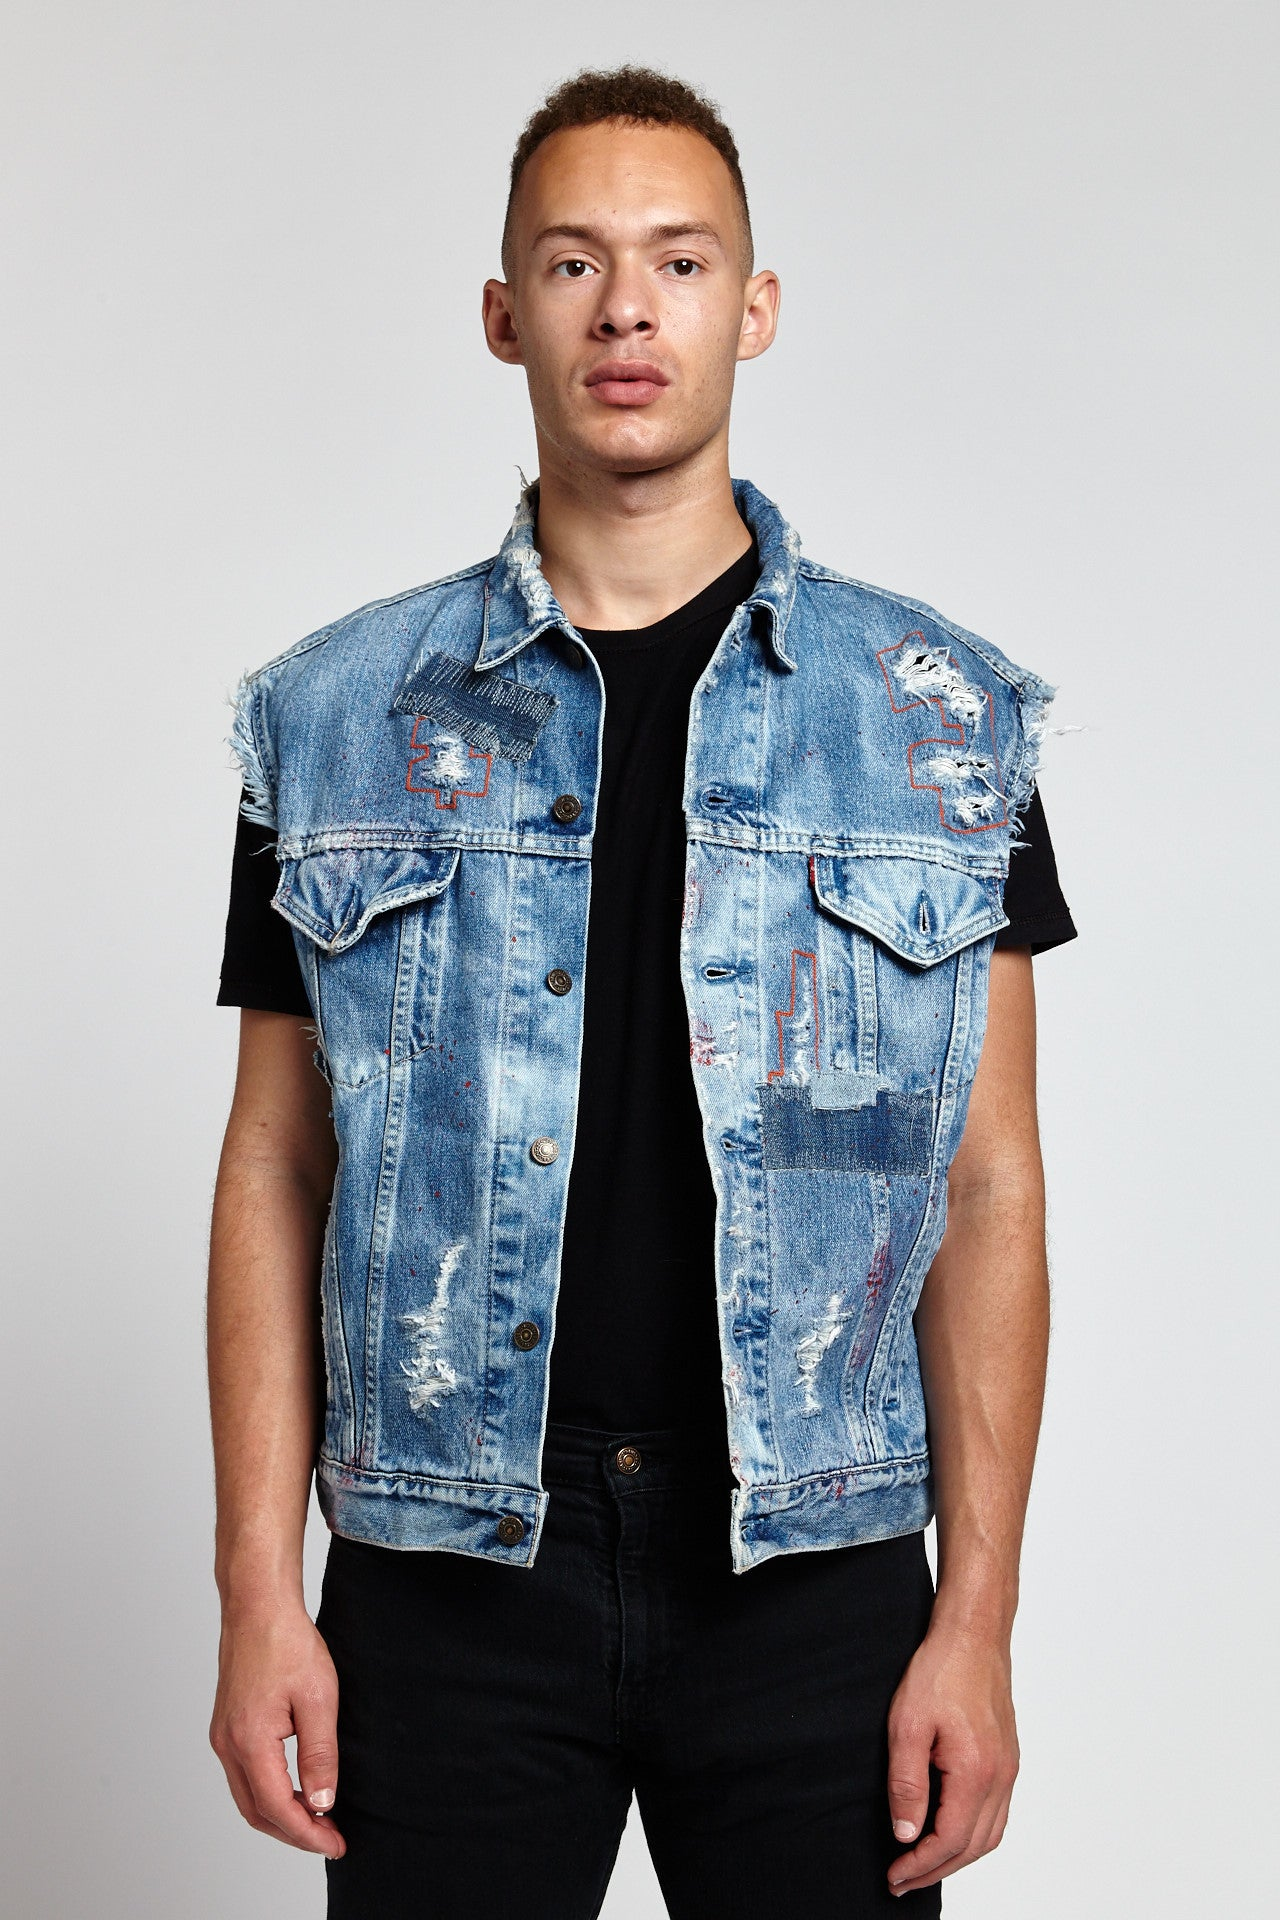 LETTERING SLEEVELESS COTTON BLUE XL DENIM VEST-JACKETS-Mundane Official-XL-BLUE-Mundane Official